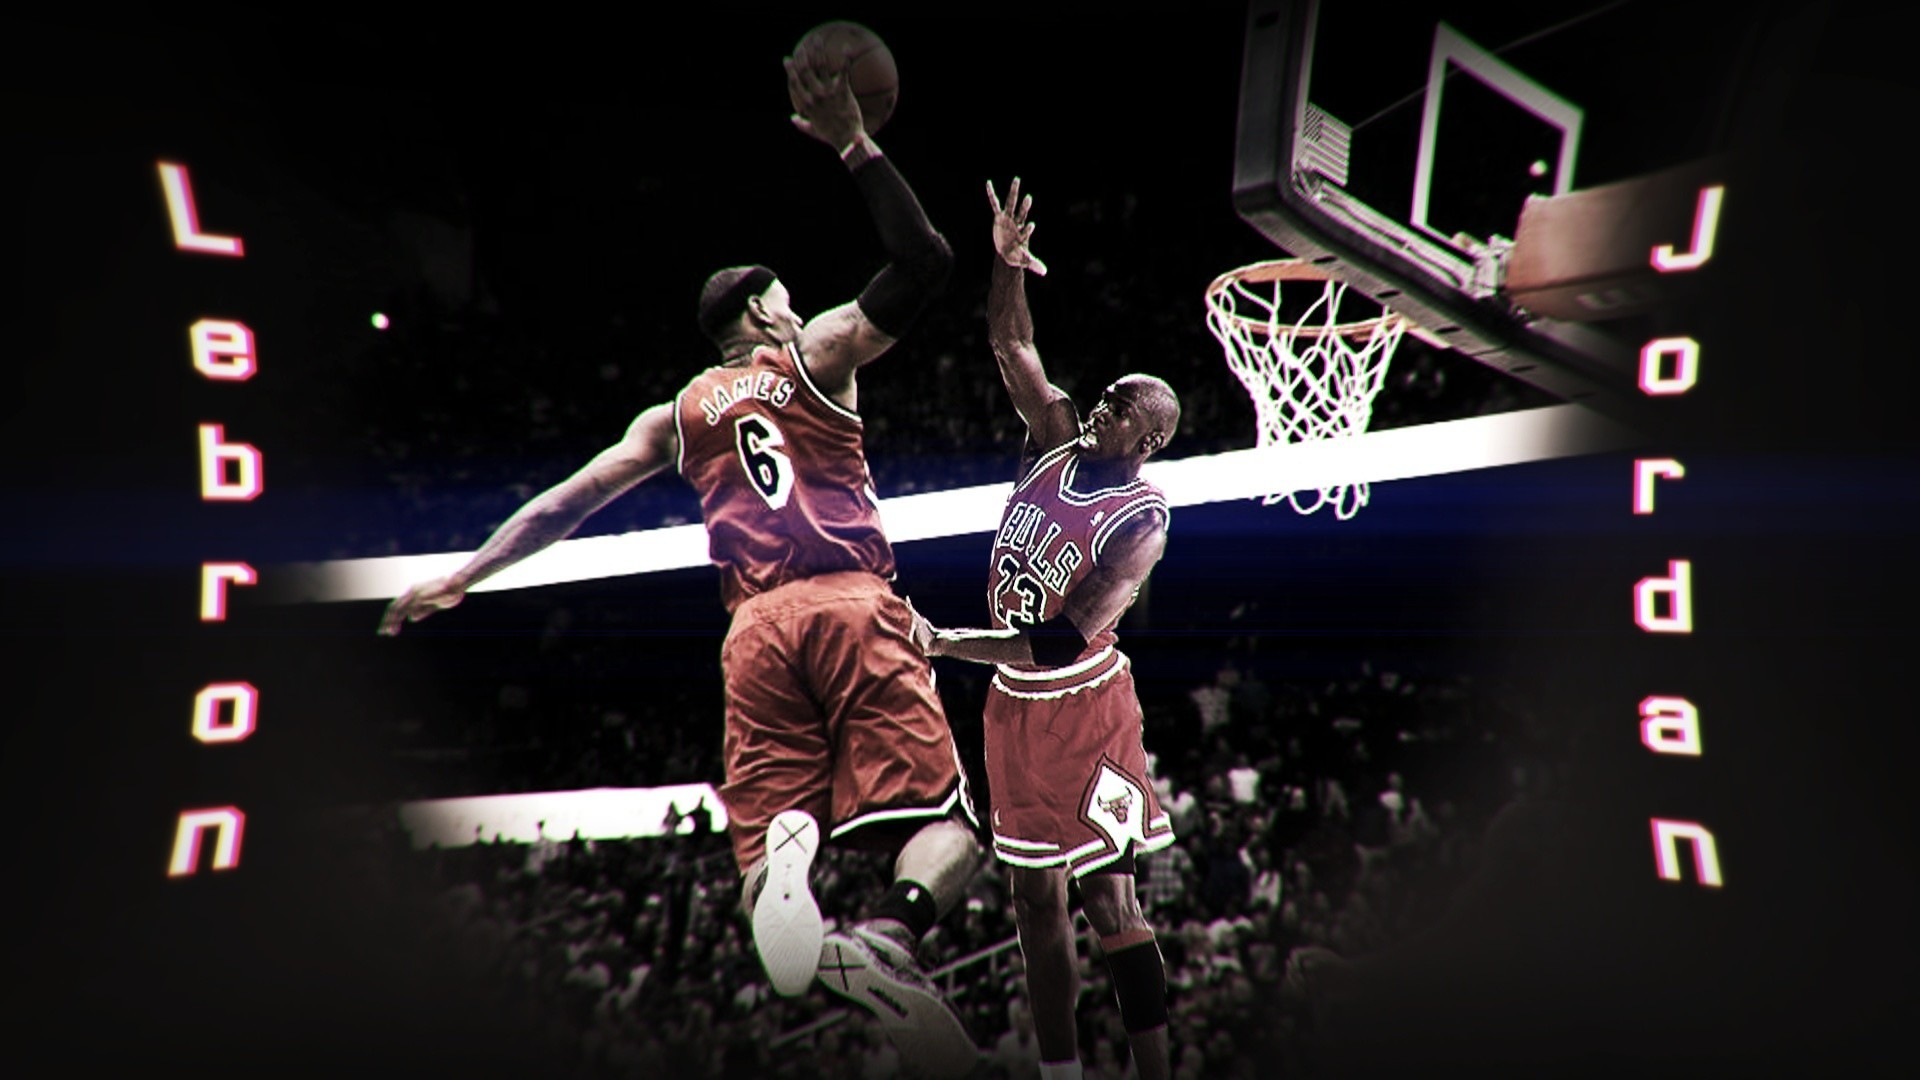 Lebron James Wallpaper Dunk 79 Images